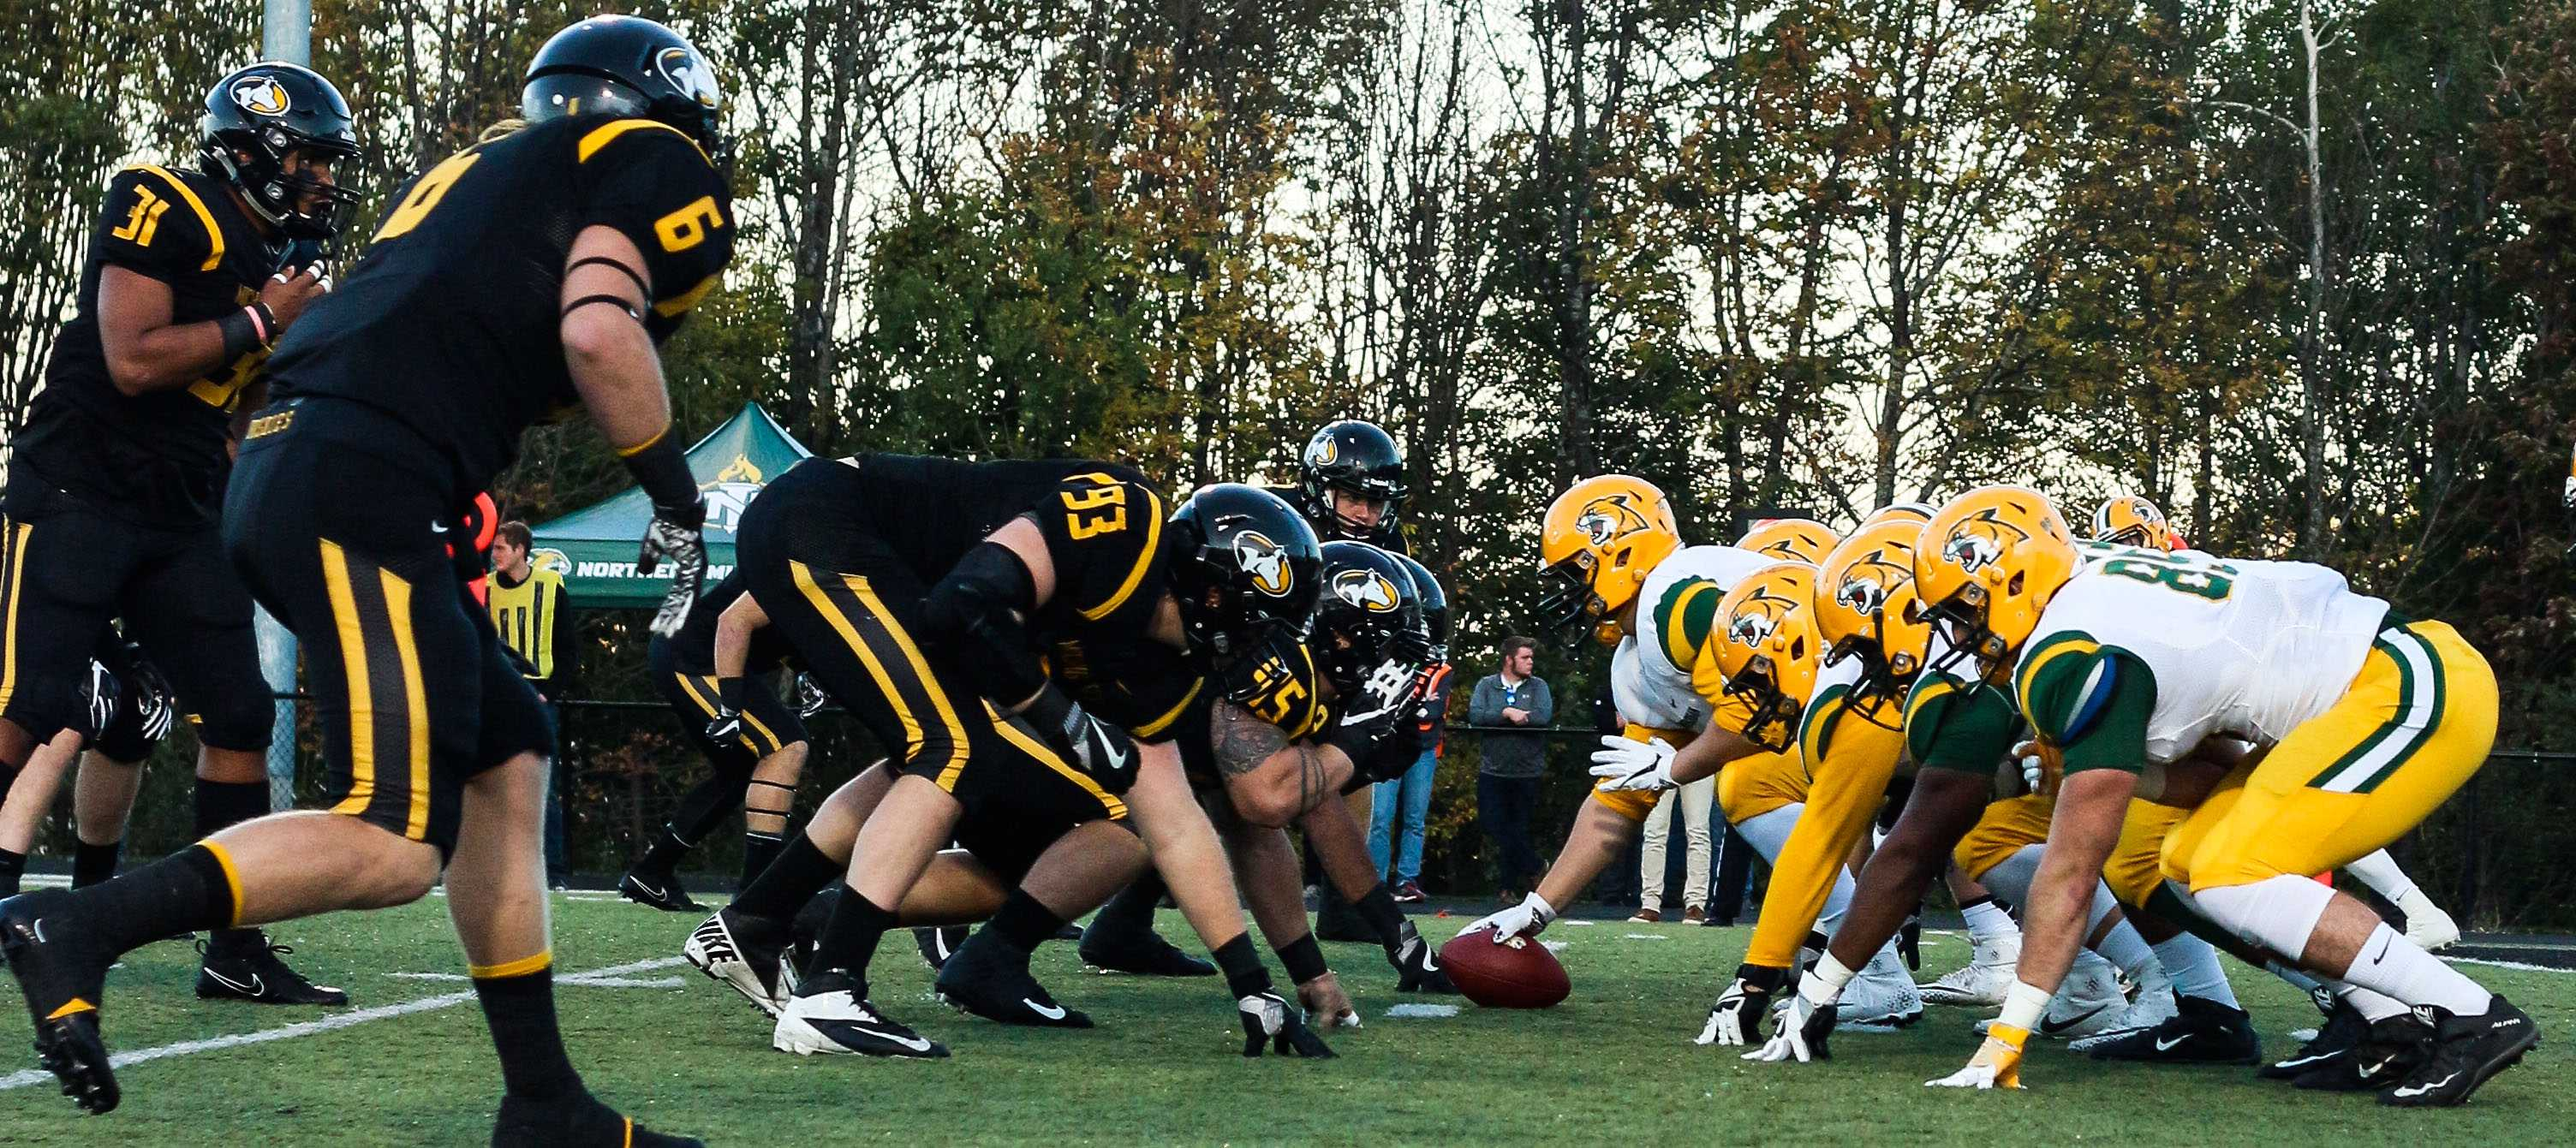 The Huskies on the field during their battle for the Miner's Cup.                Image courtesy of Ajay Patil